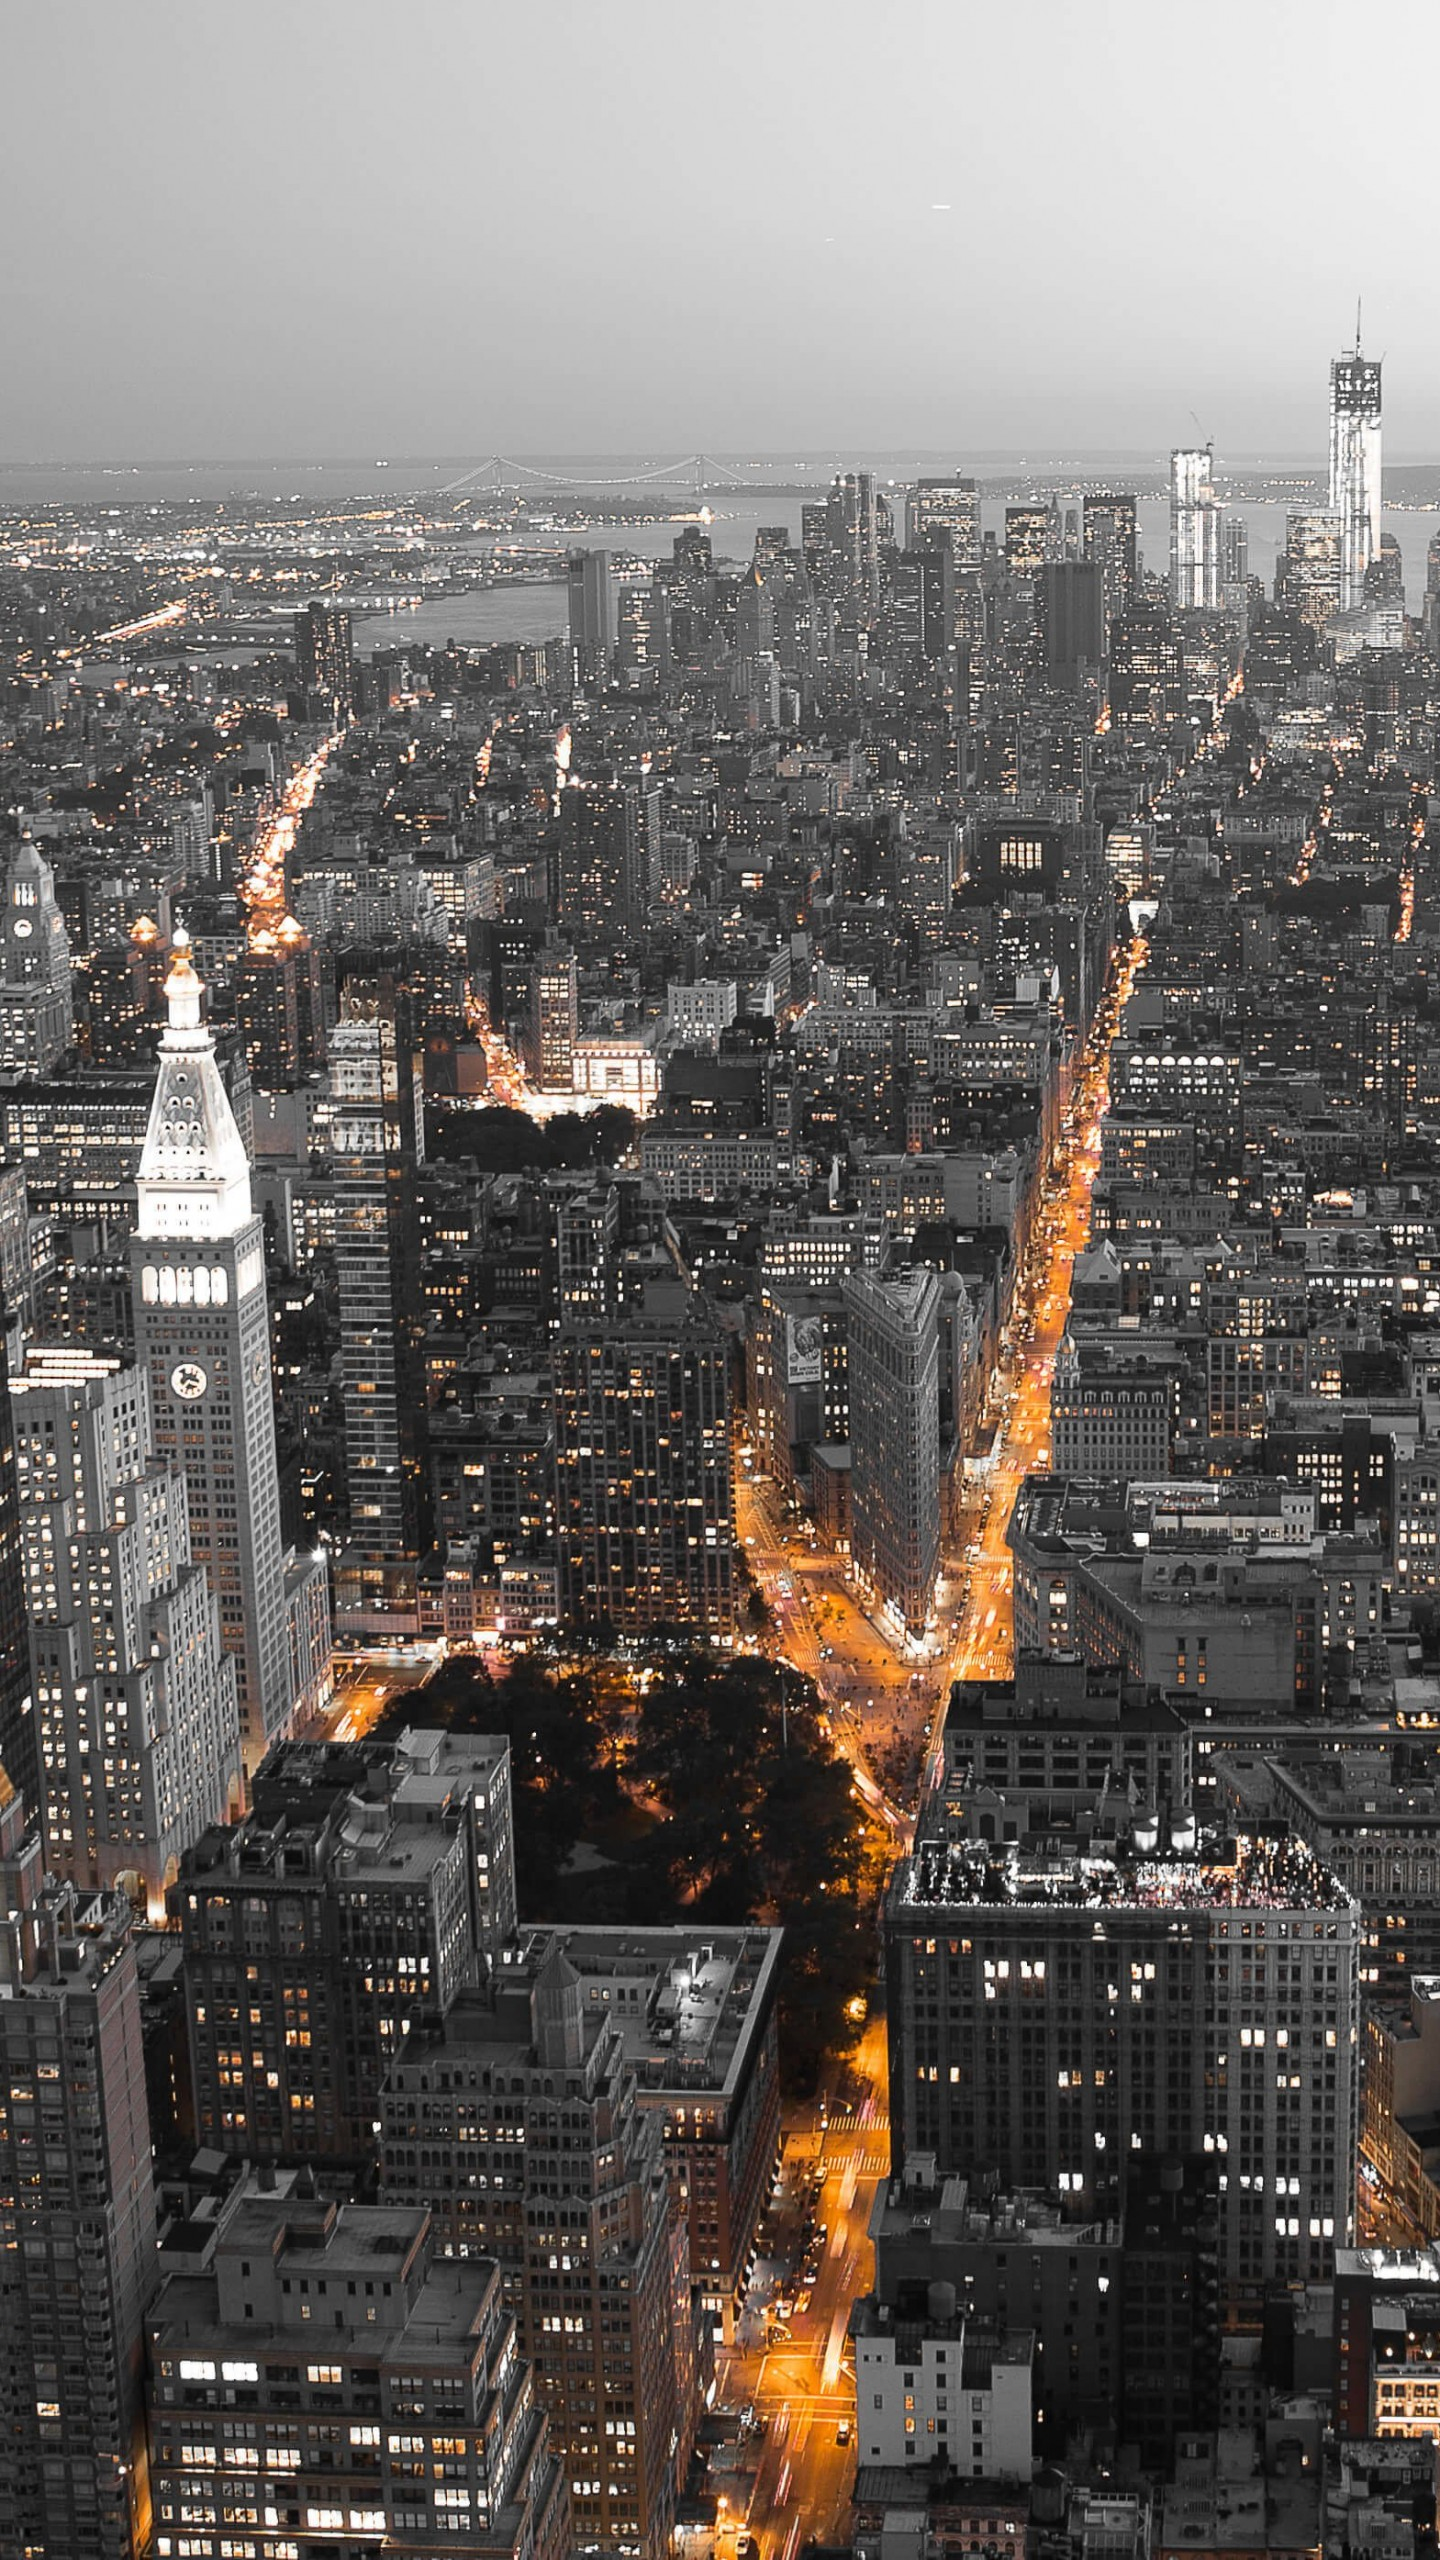 New York City by Night Wallpaper for SAMSUNG Galaxy S6